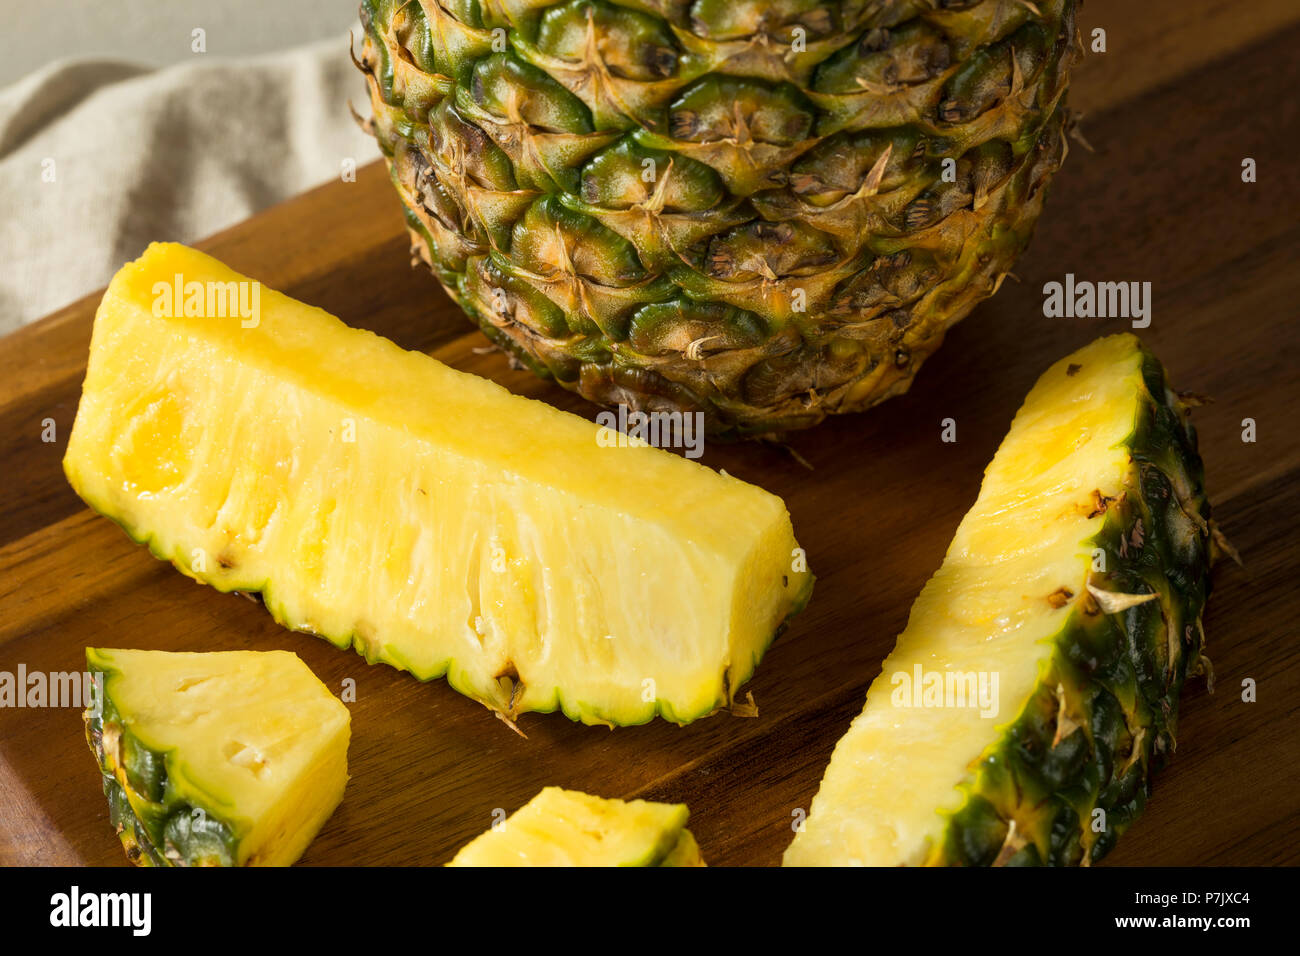 Raw Yellow Organic Pineapple Slices Ready to Eat - Stock Image